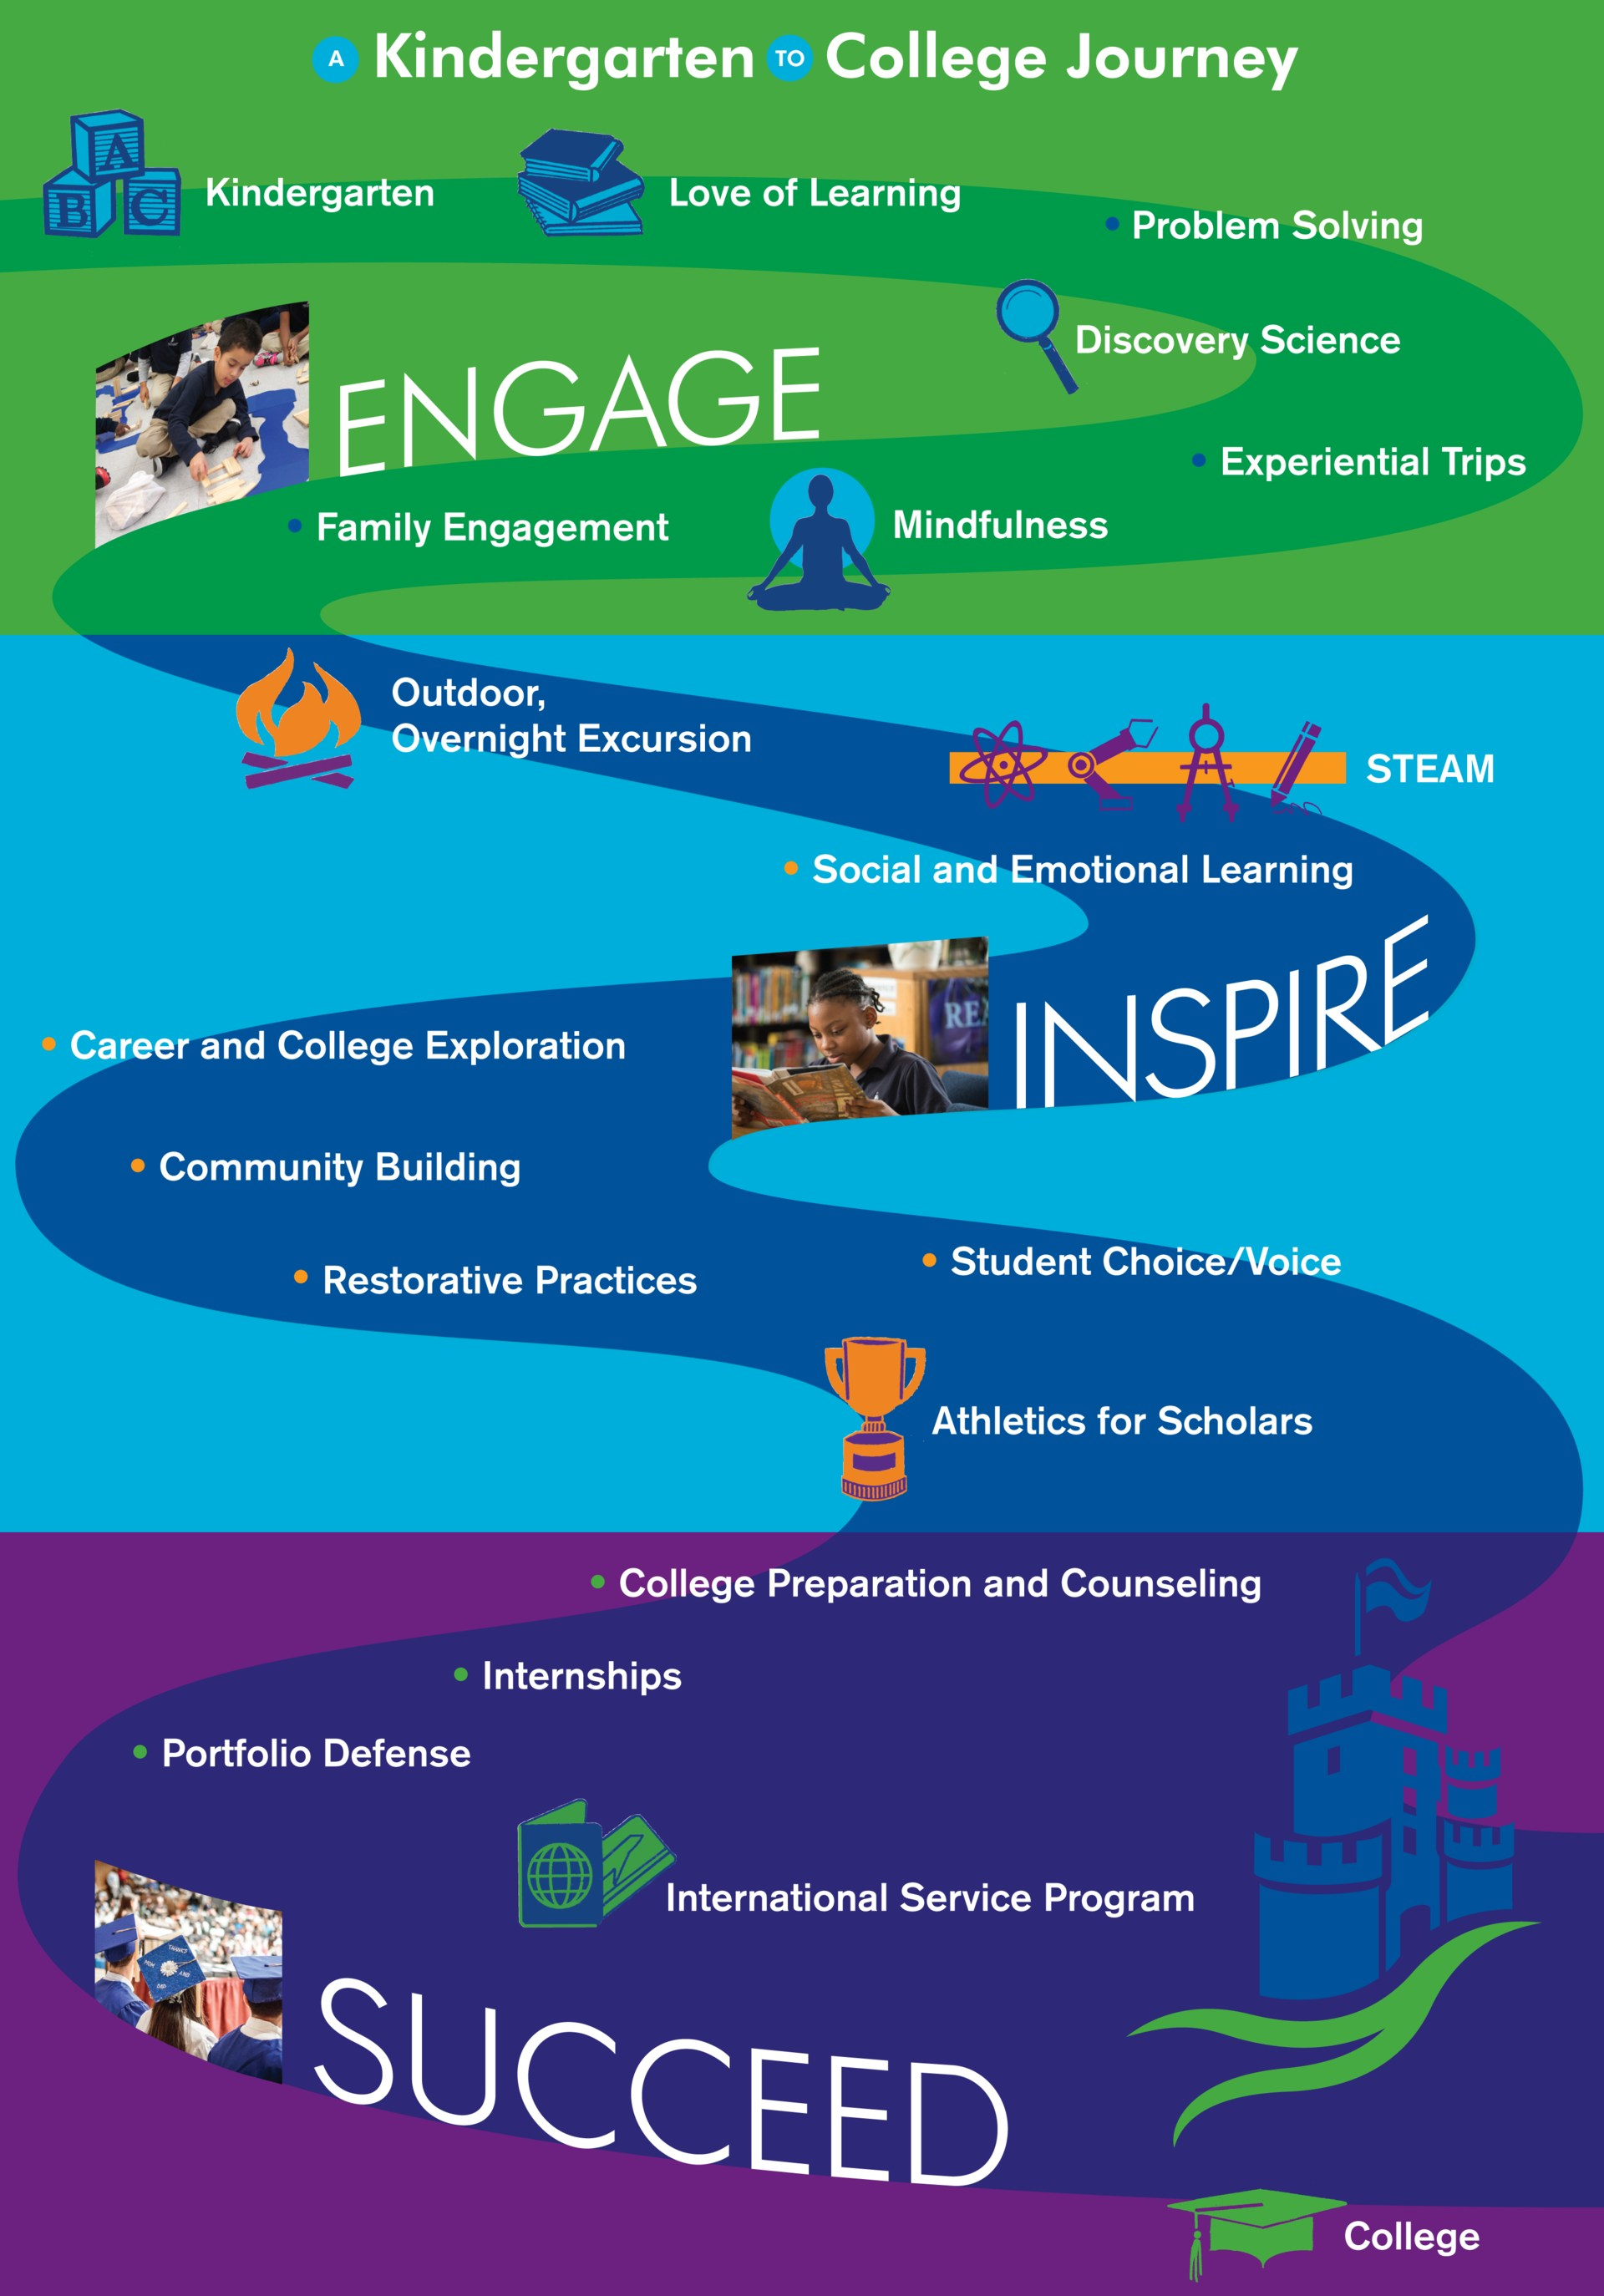 K to College Journey poster